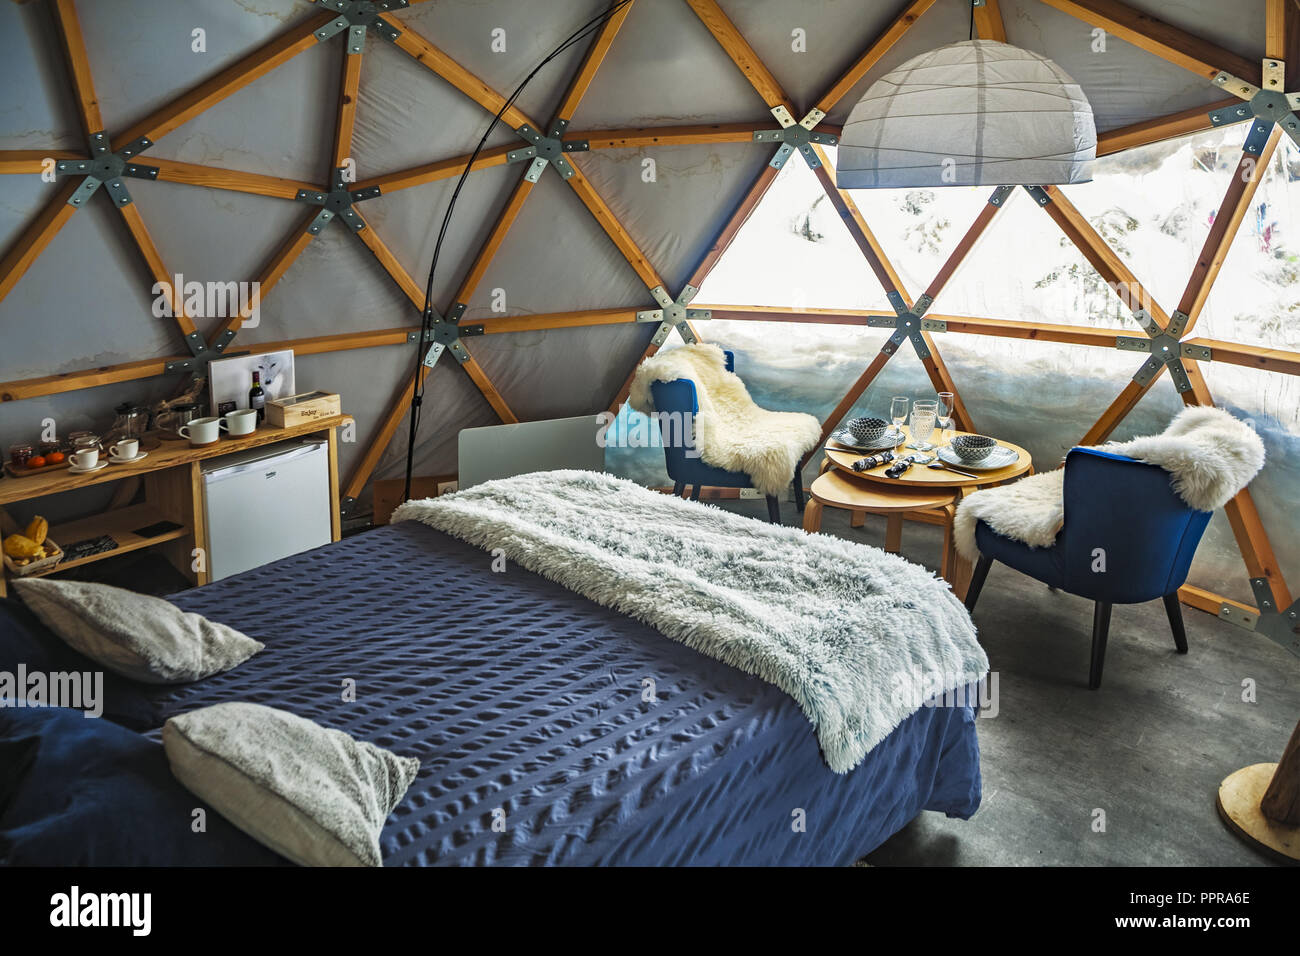 Dome Geodesique accommodation. Gourette ski resort, Pyrenees Atlantiques, Aquitaine region, Ossau Valley, France - Stock Image